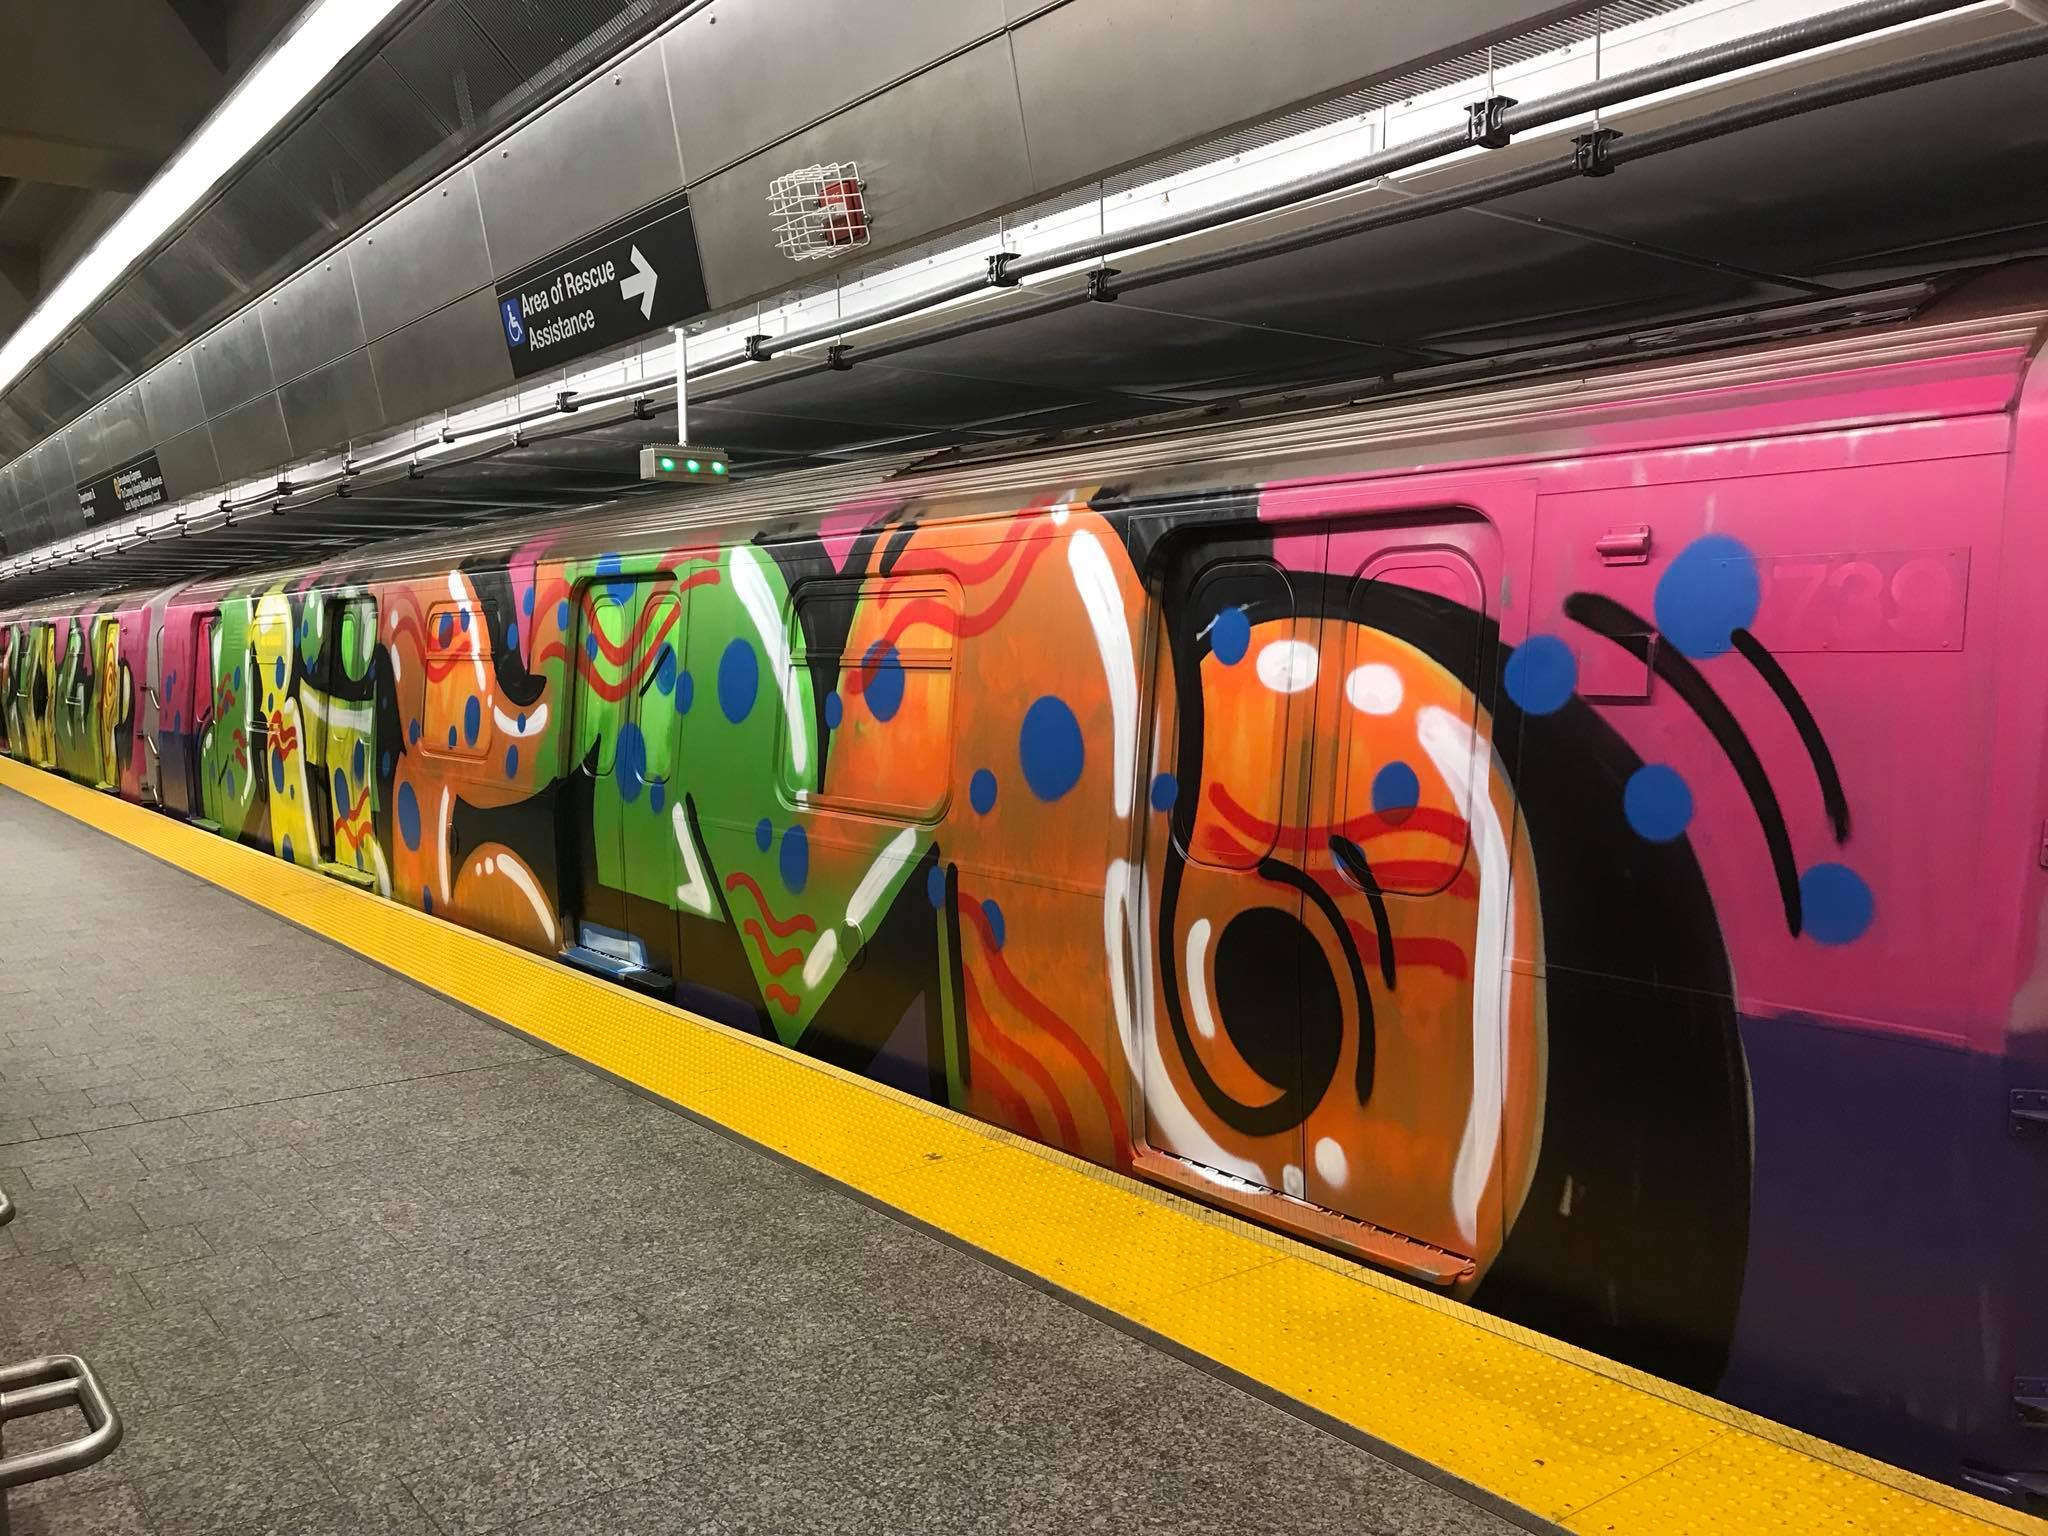 A Q train was completely covered in illegal graffiti